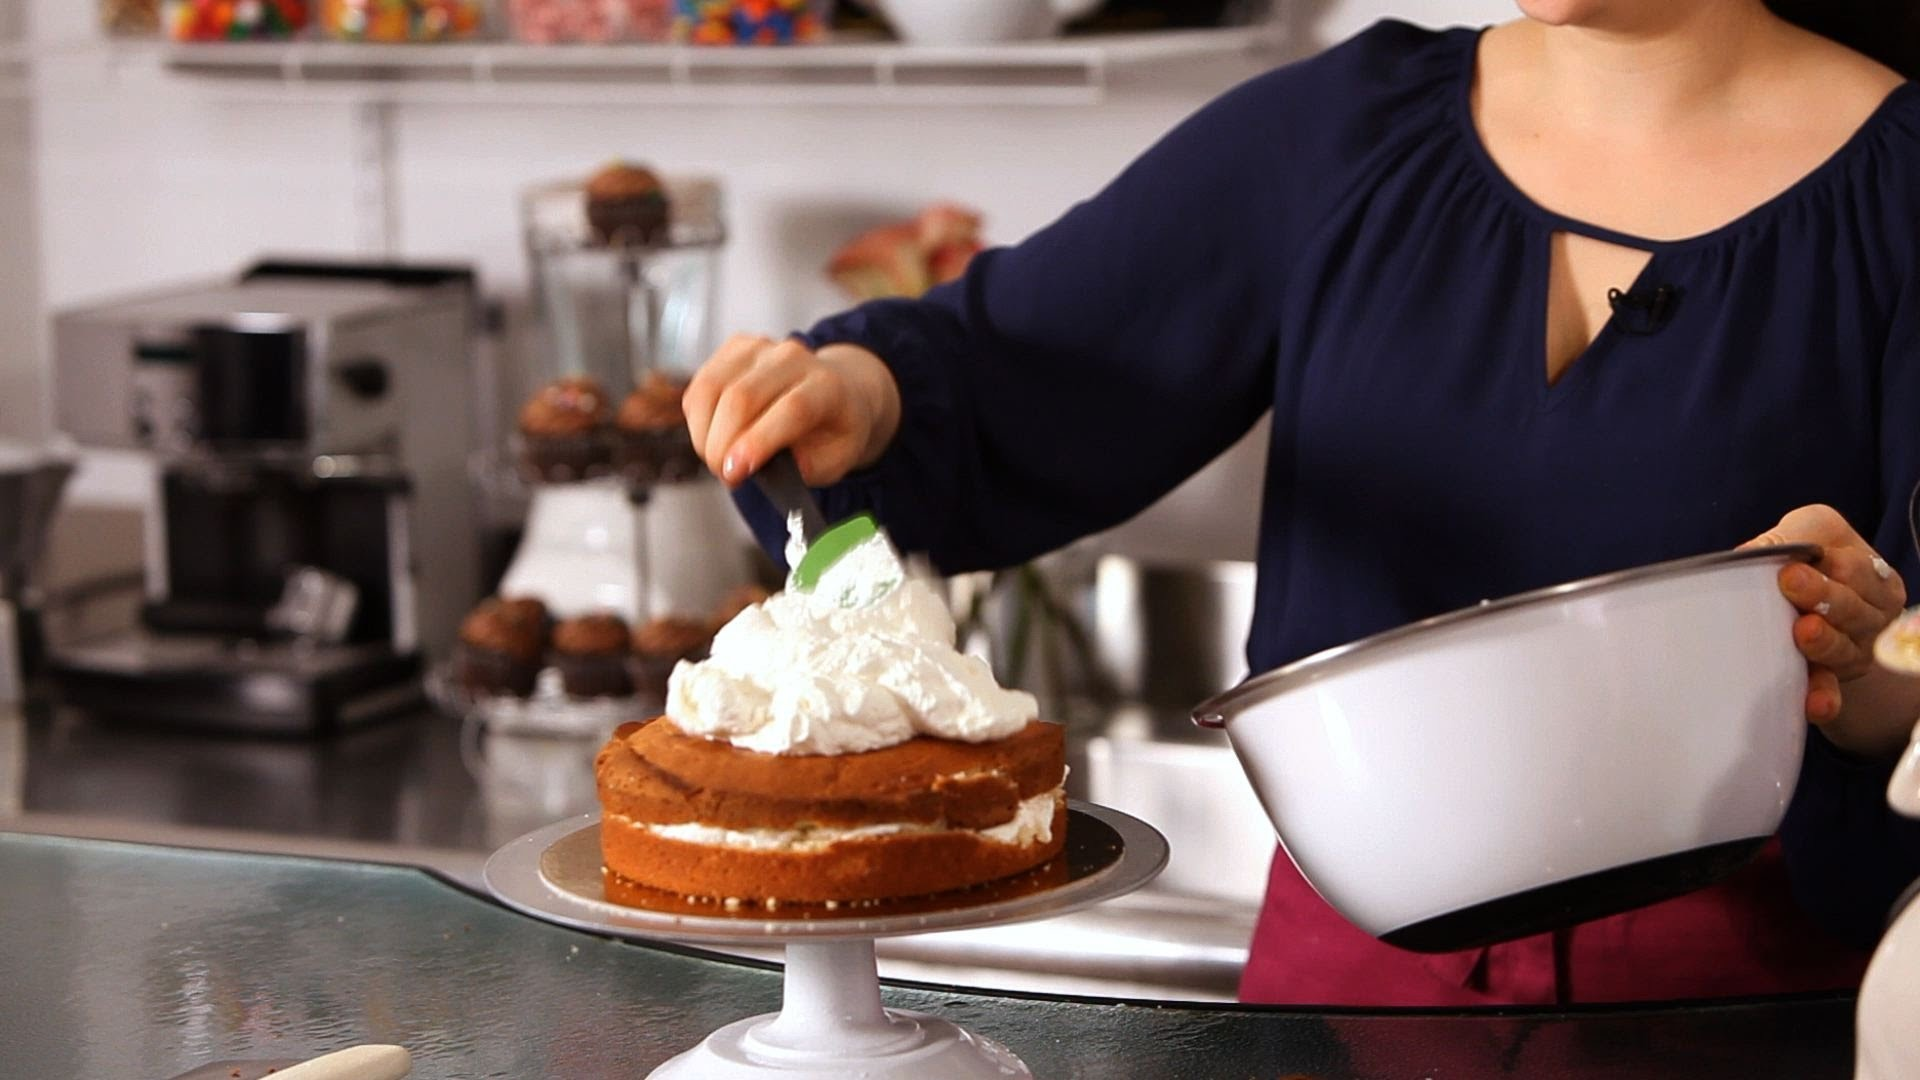 How to Ice a Cake with Whipped Cream | Cake Decorating